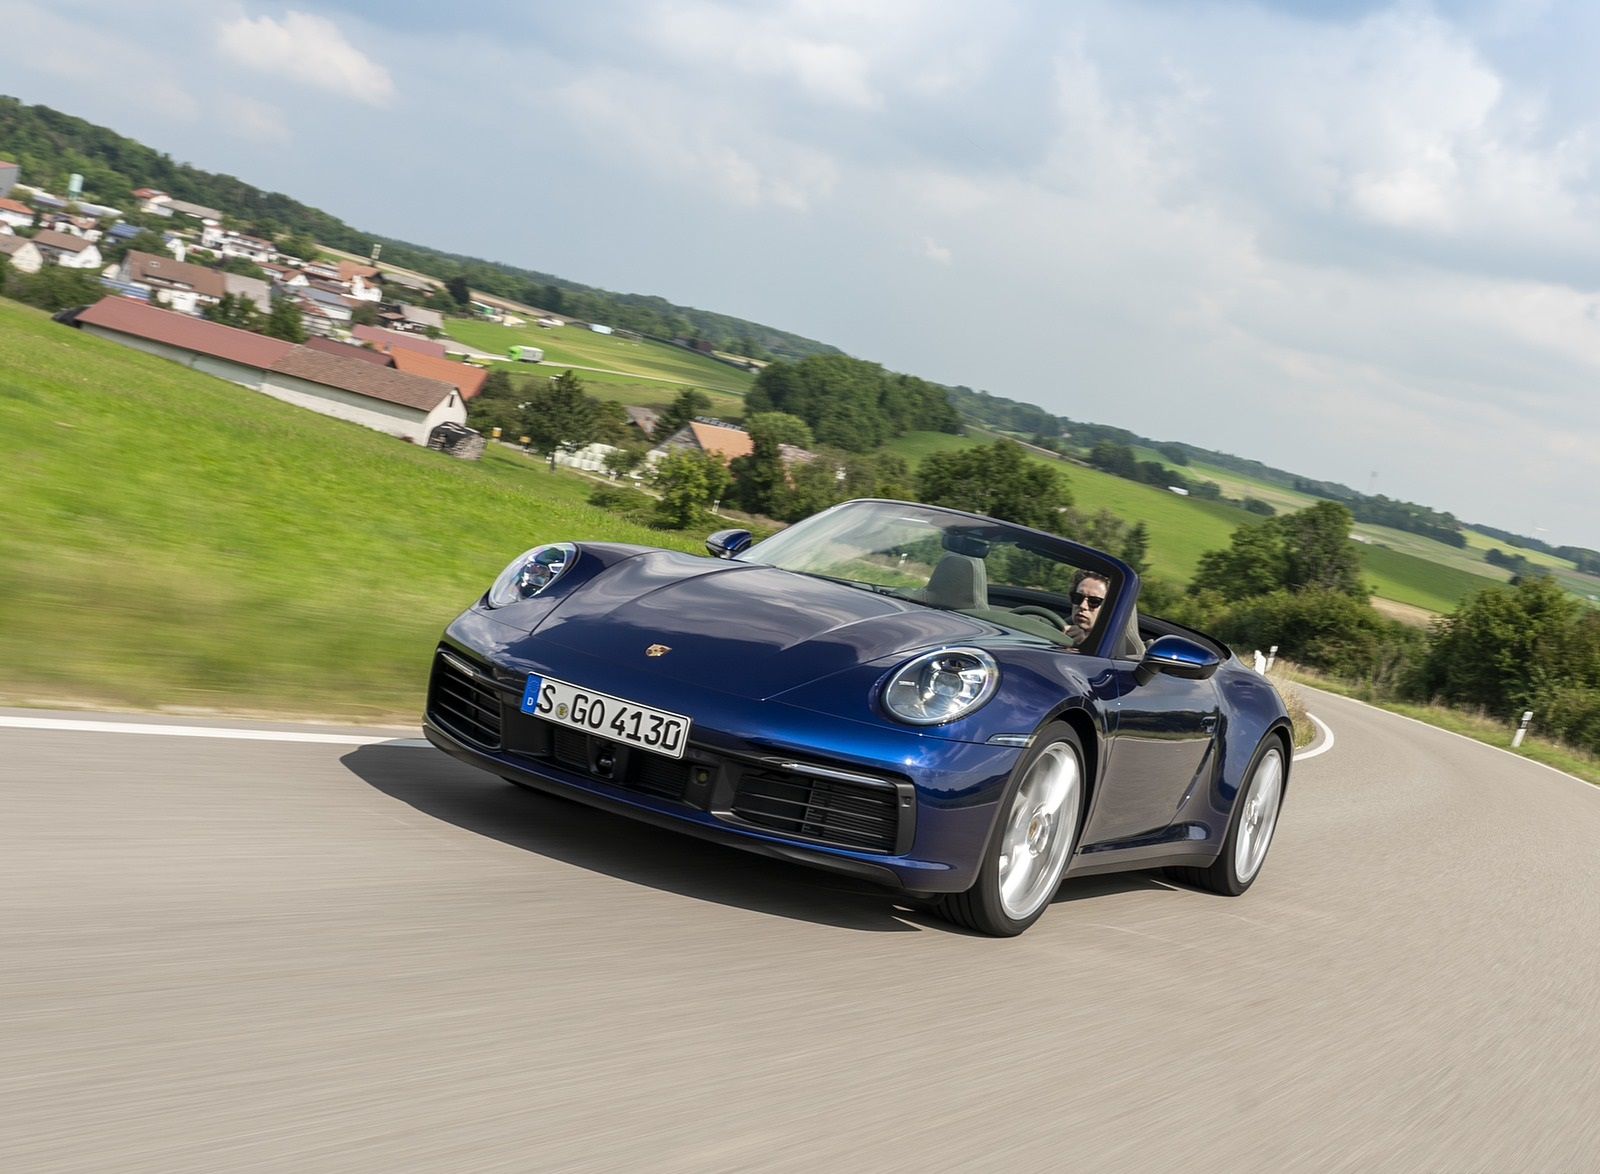 2020 Porsche 911 Carrera Cabriolet (Color: Gentian Blue Metallic) Front Three-Quarter Wallpapers (2)